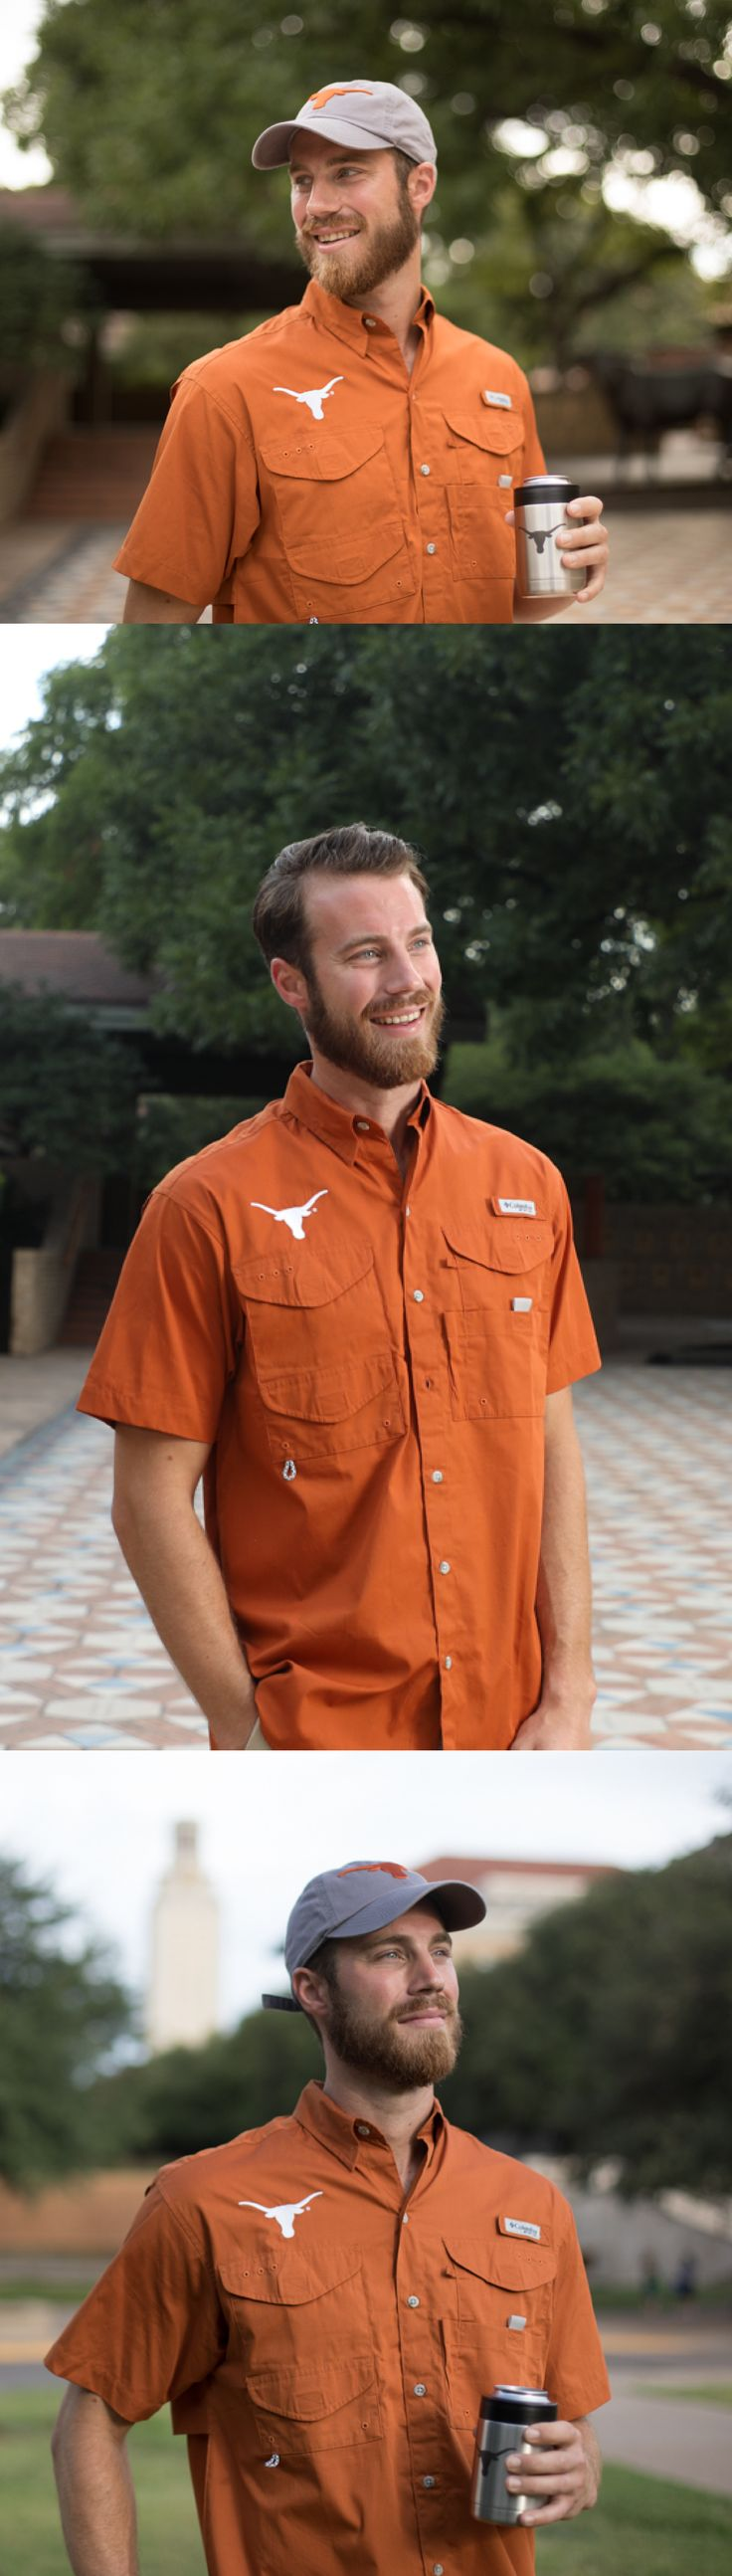 Great for the game! The classic University of Texas Columbia Fishing Shirt is one of our best-selling men's items. The Columbia Fishing Shirt is designed to be comfortable, yet durable, for those active Longhorns. It's made of 100% cotton poplin with a polyester liner. The back has a mesh-lined vent to keep you cool while tailgating or watching a game in the hot September sun. The front has four Velcro-closed pockets to keep your gear secure. If you haven't worn a Columbia Fishing Shirt, you…